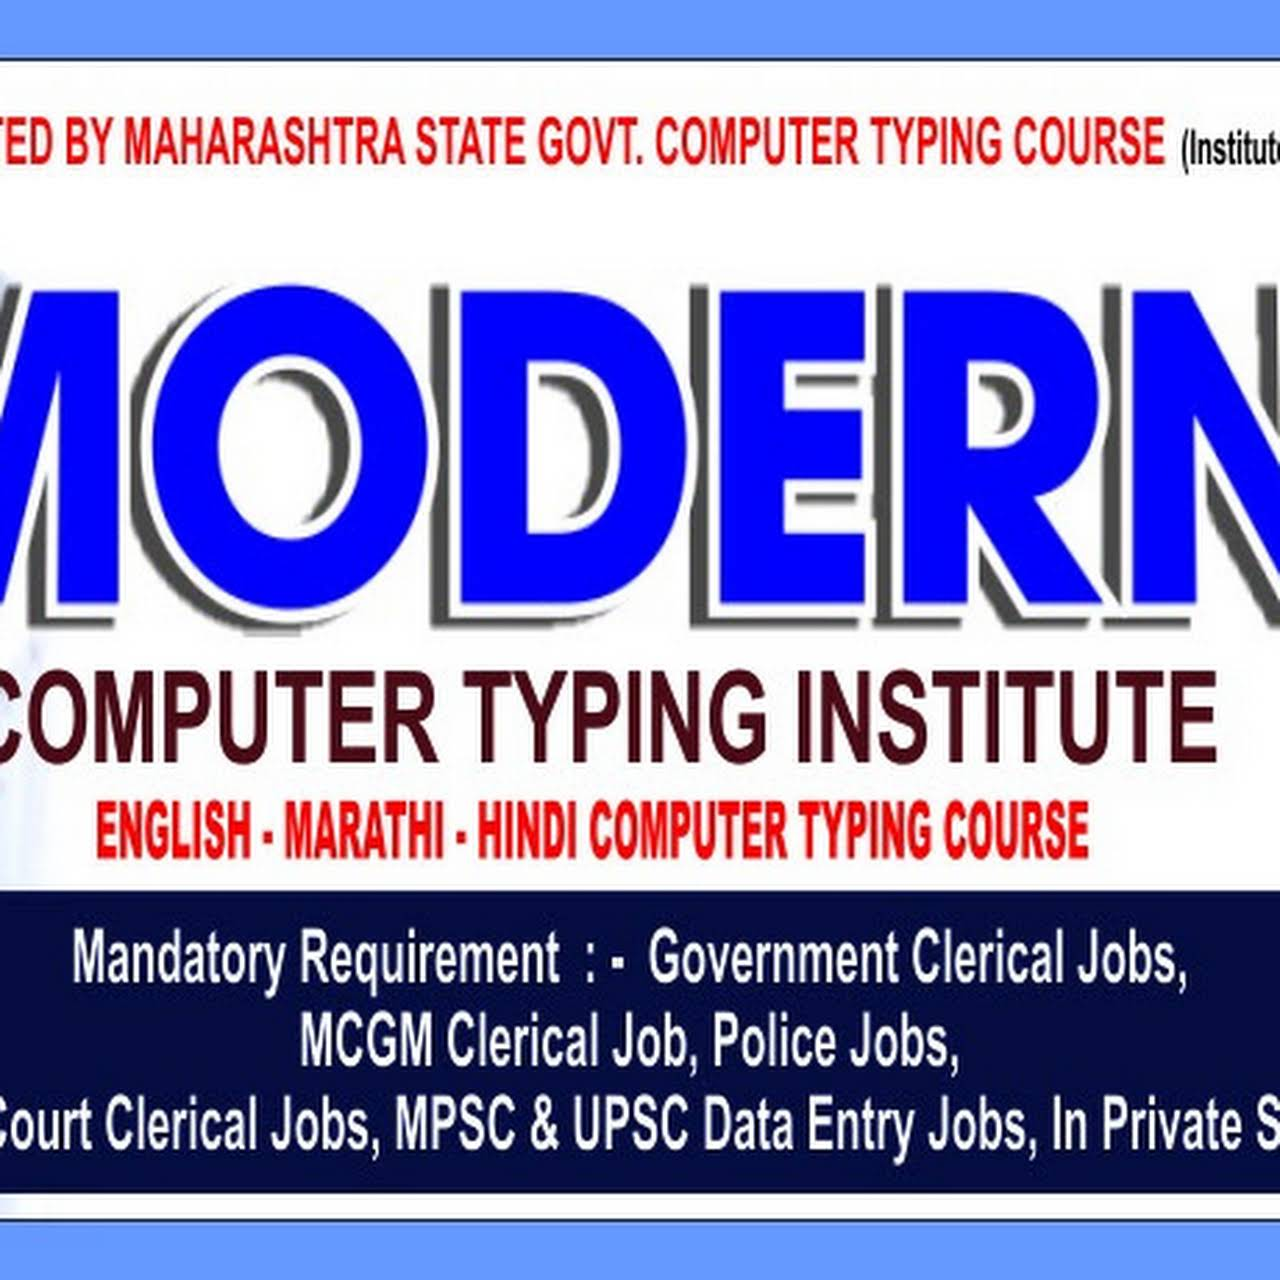 Modern Computer Typing Institute - Educational Institution in Mumbai